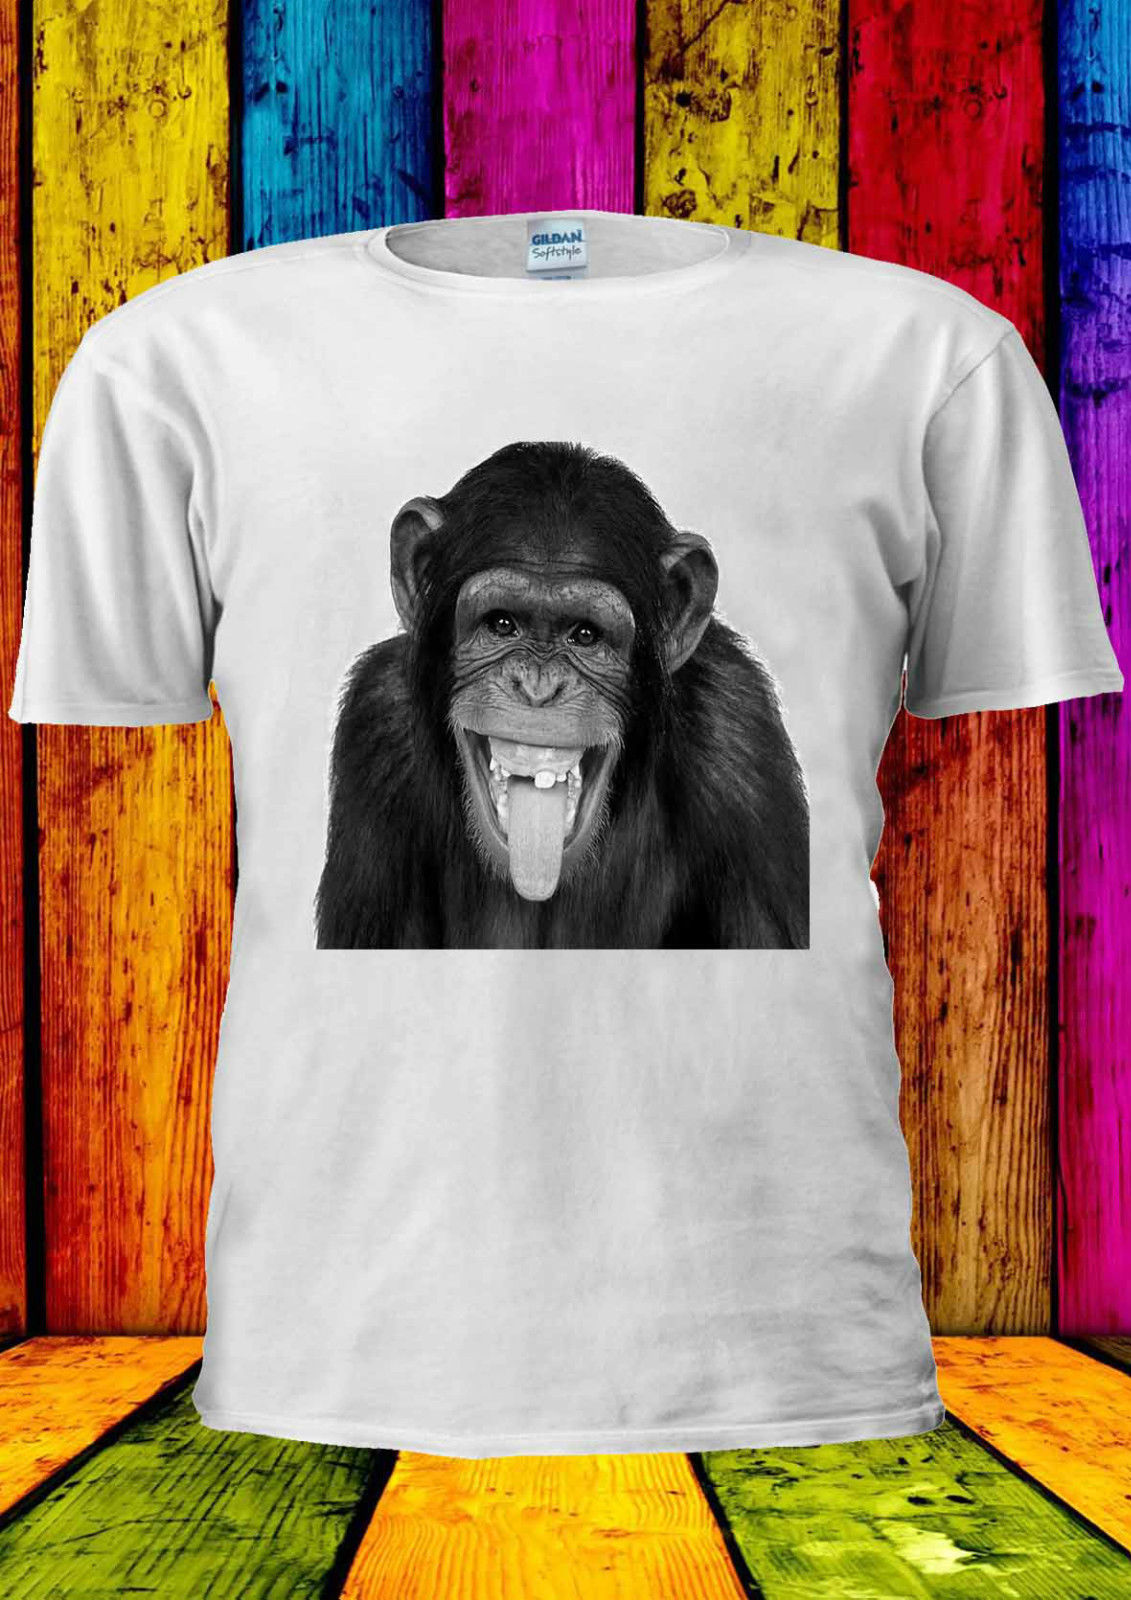 Funny Monkey Smiling Laughing Tumblr T-shirt Vest  Top Men Women Unisex 1453 Tops Tee New free shipping